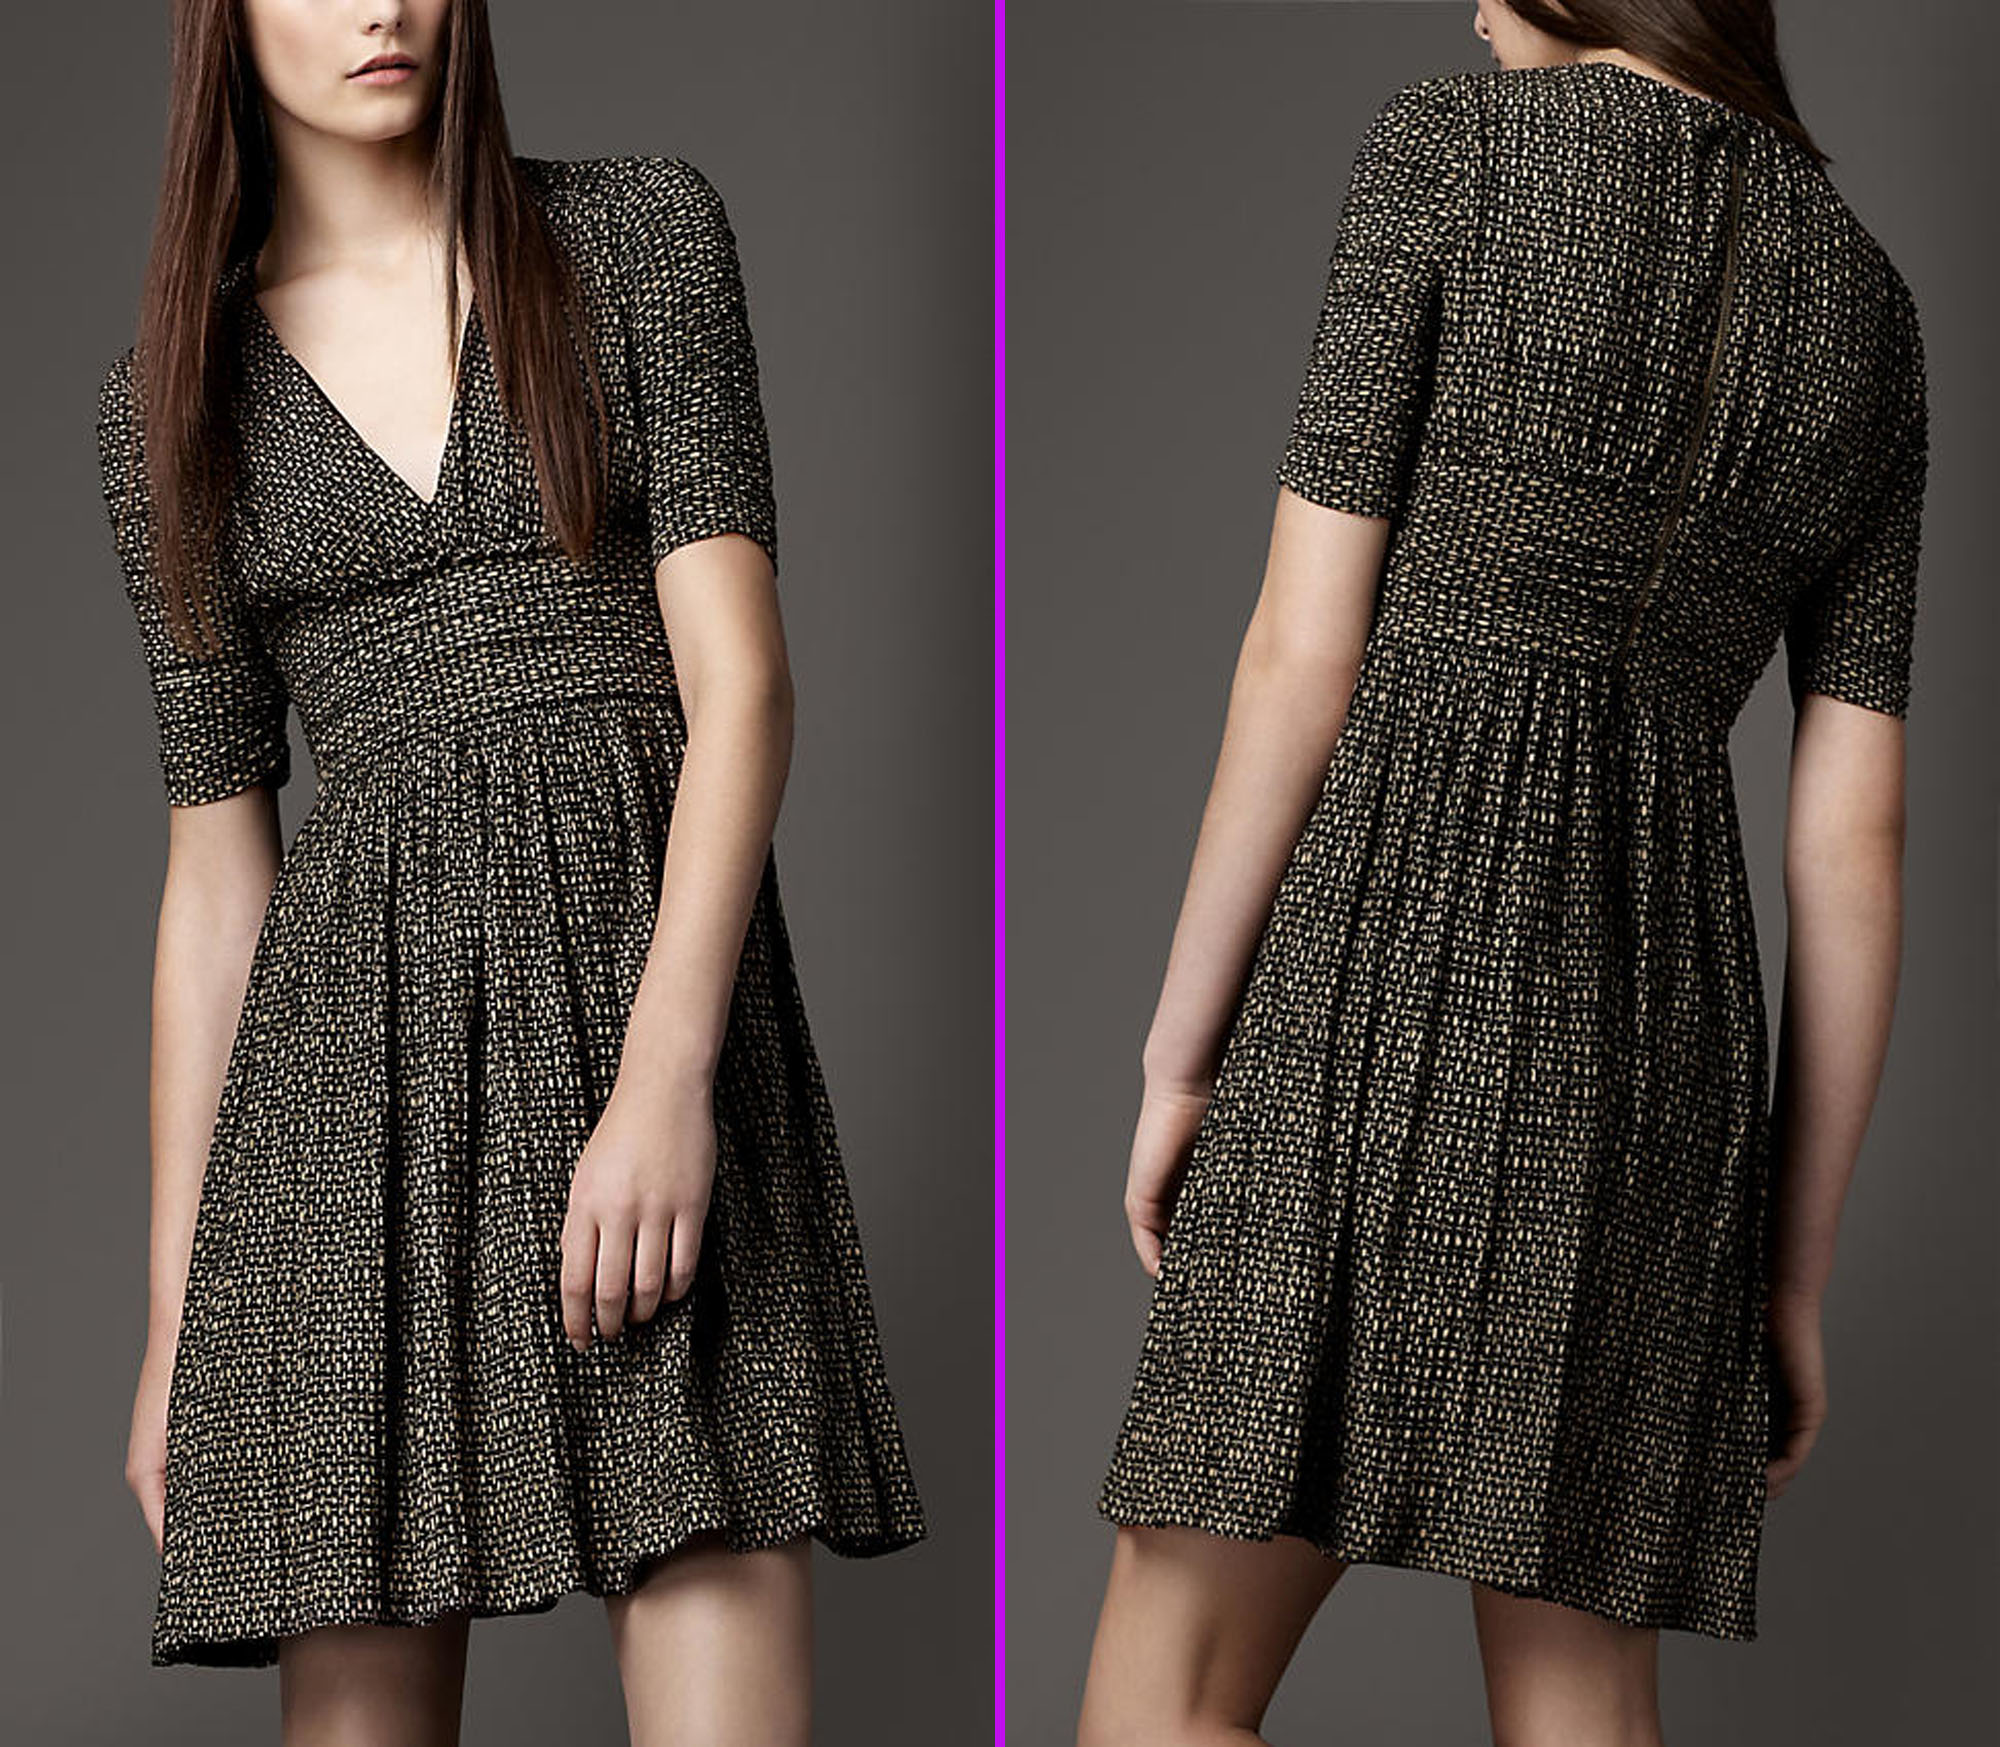 luxury dress for women as fashionable clothes by burberry fashion